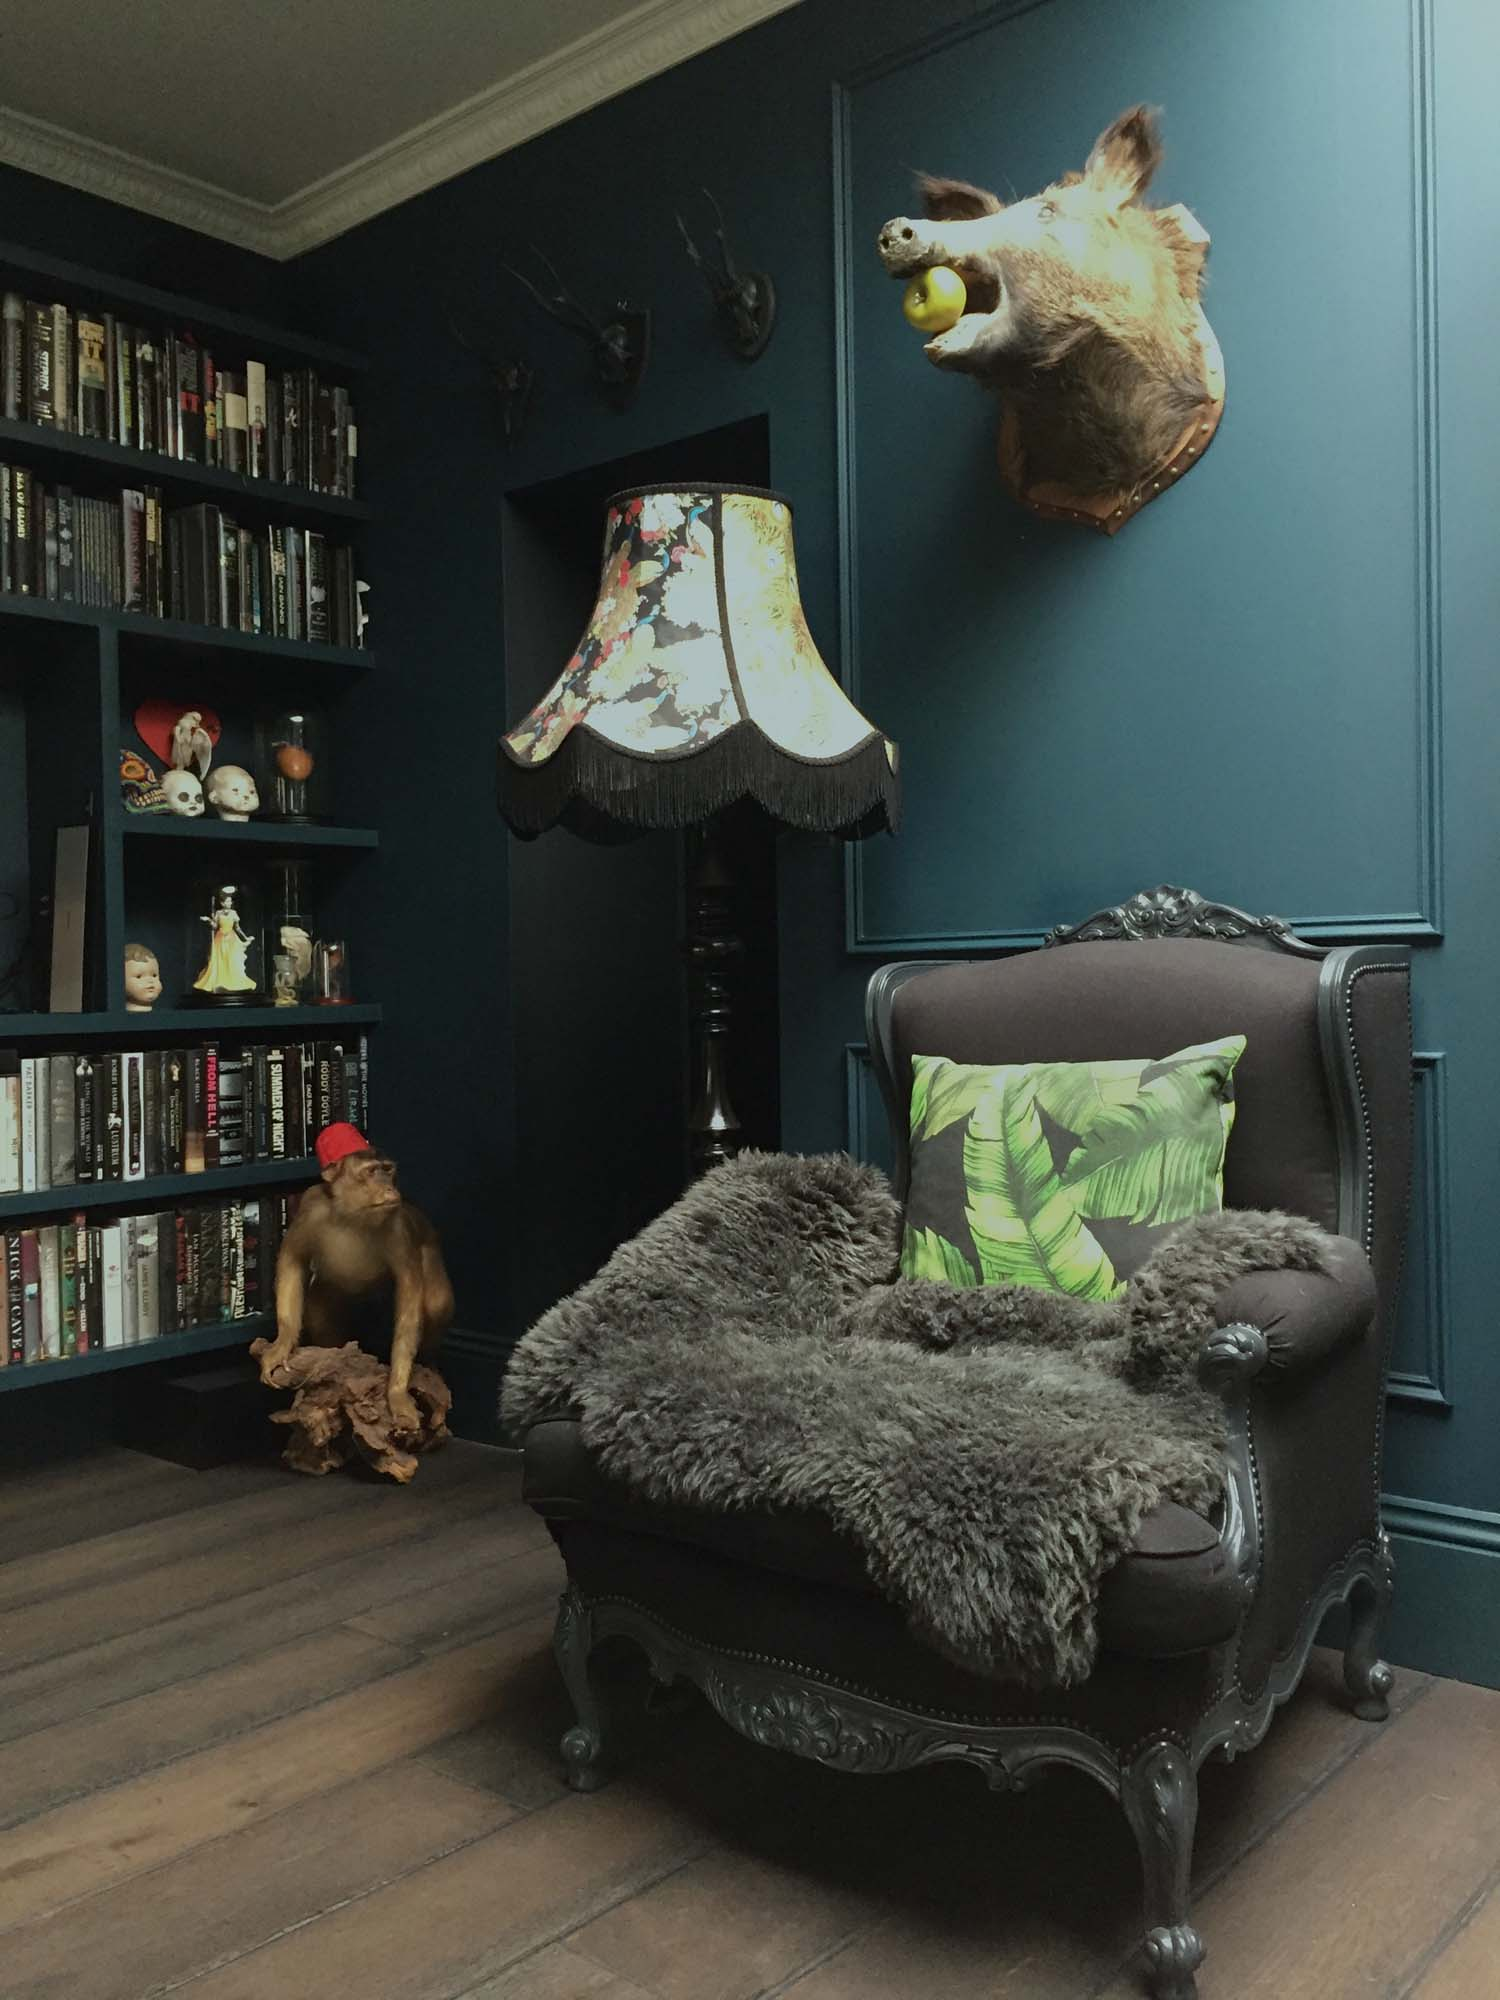 Most of Laurie's taxidermy comes from Get Stuffed in Islington